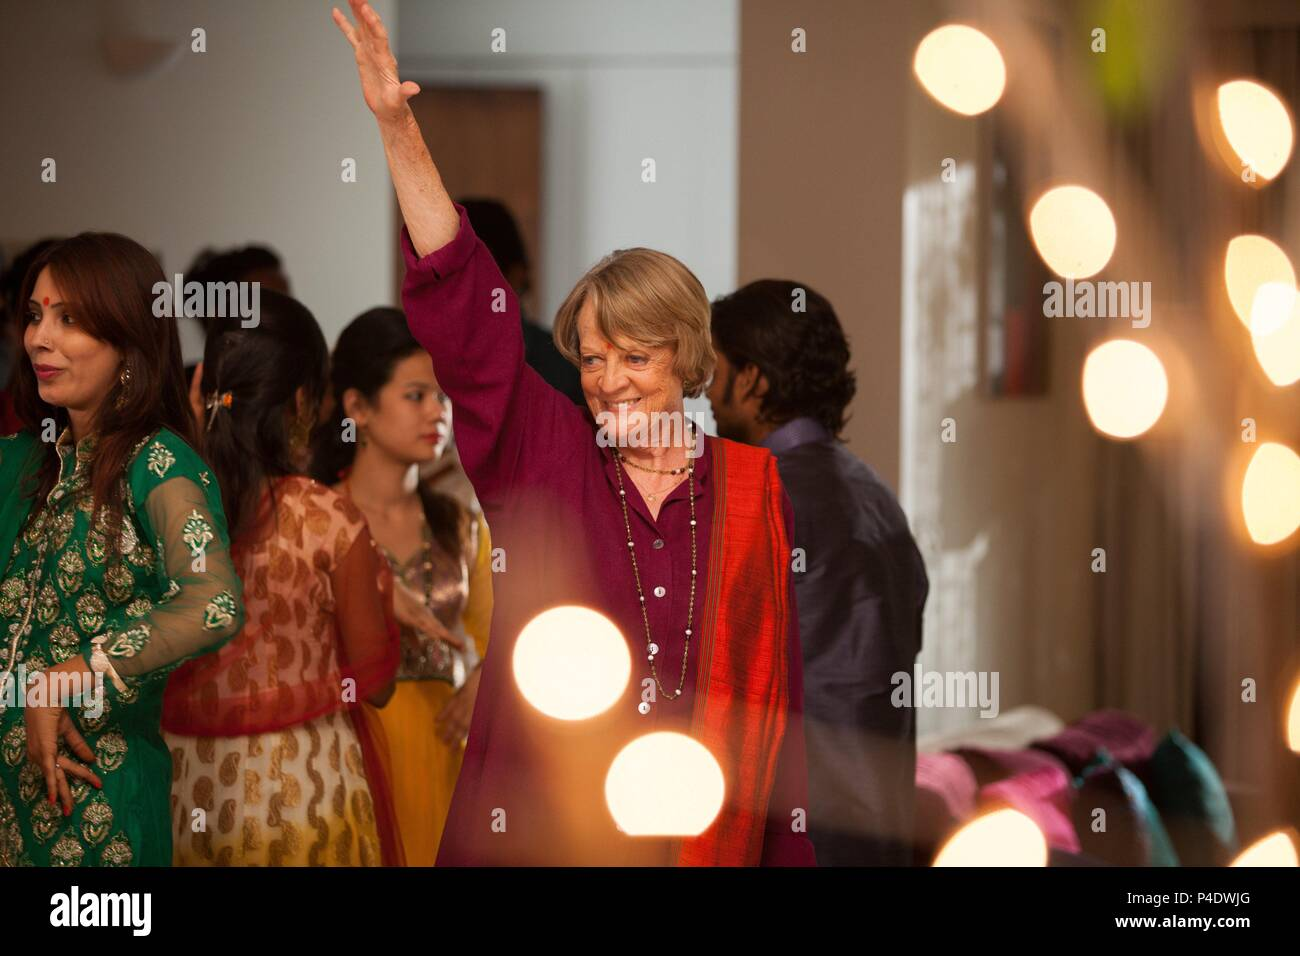 Original film title the second best exotic marigold hotel english english title the second best exotic marigold hotel film director john madden year 2015 stars maggie smith credit blueprint pictures album malvernweather Images